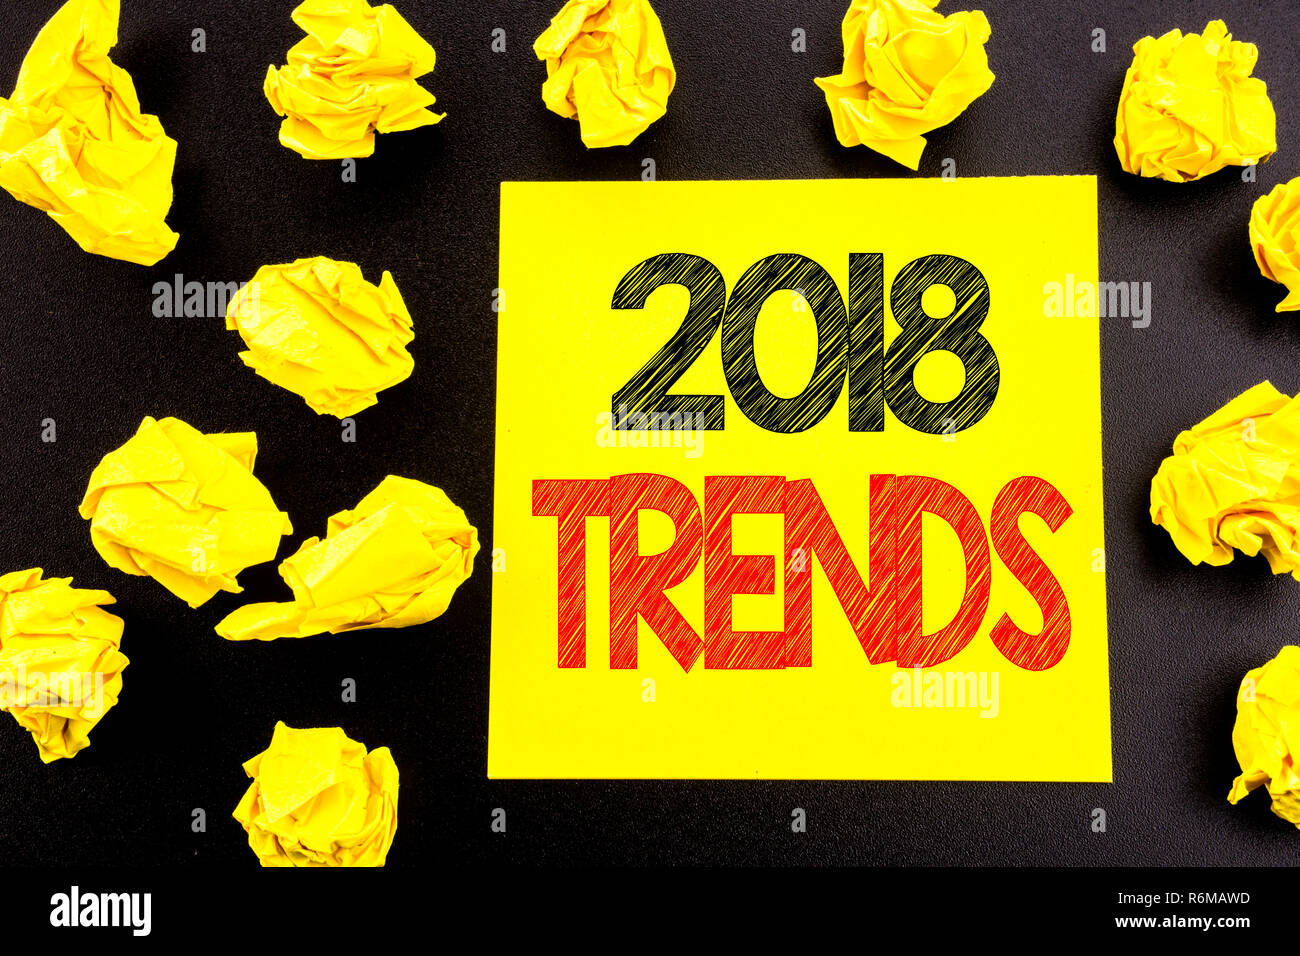 Conceptual hand writing text showing 2018 Trends  Business